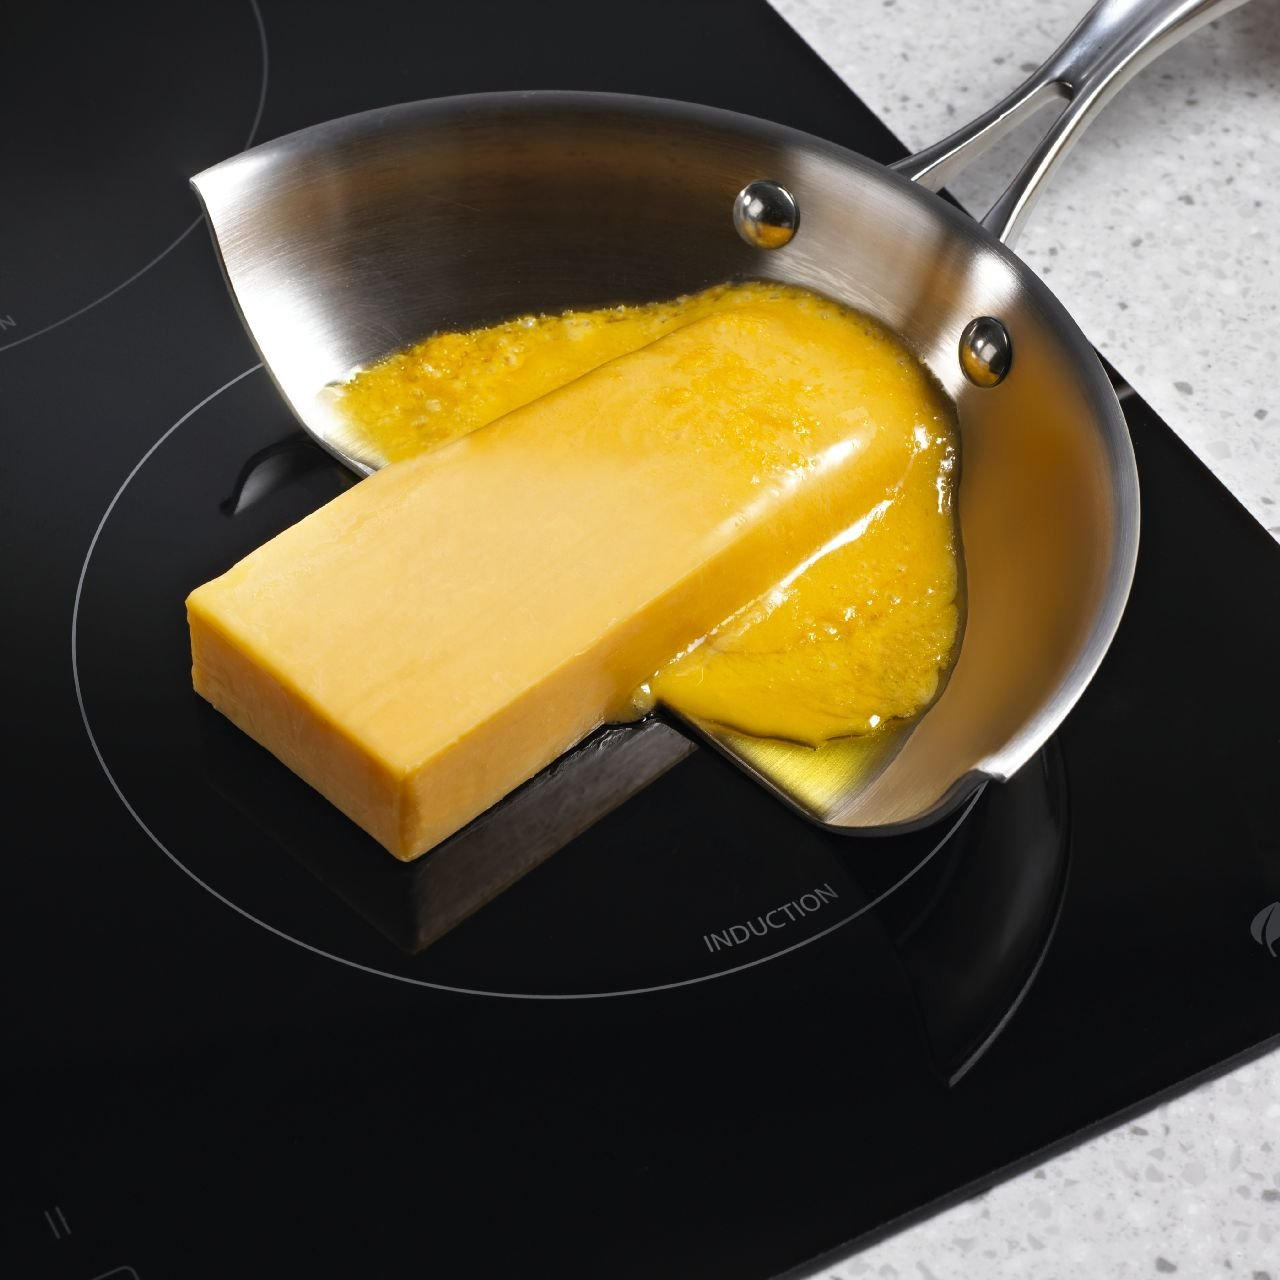 Whirlpool Gold Resource Saver GCI3061XB 30 Induction Cooktop. 4 Zones, Automatic Pan Detection